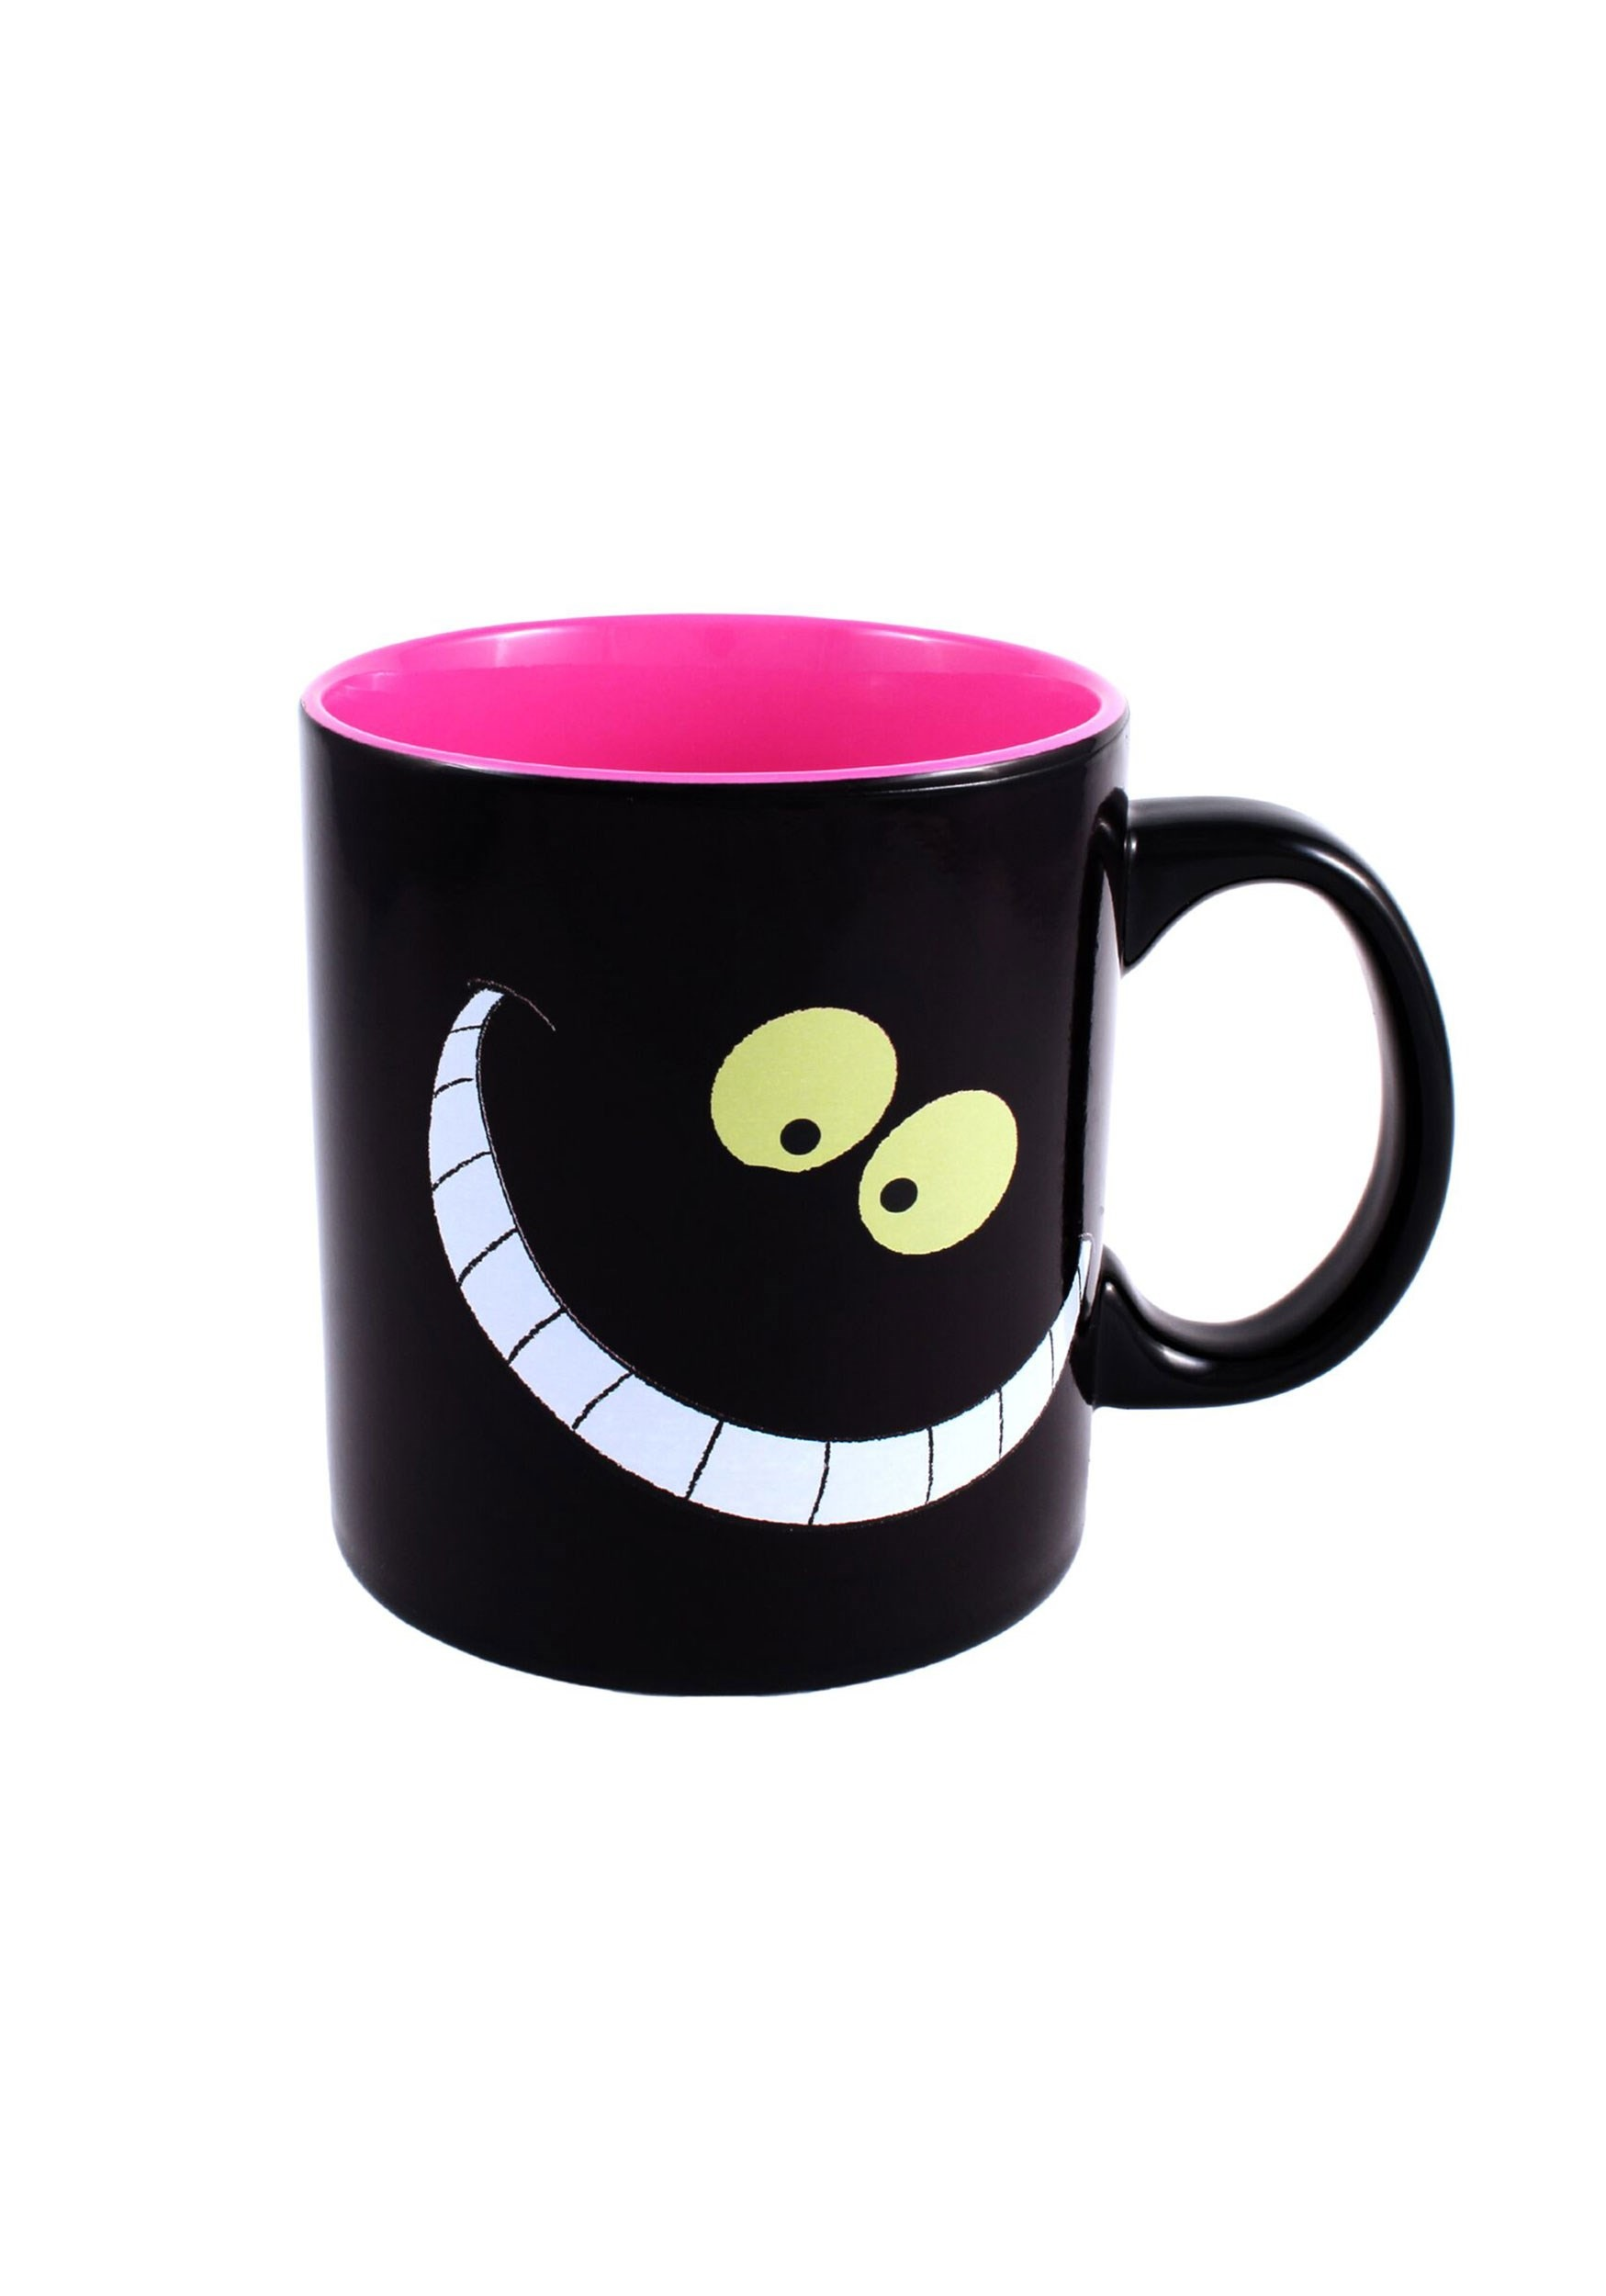 Alice in Wonderland Cheshire Cat Heat Reveal Mug